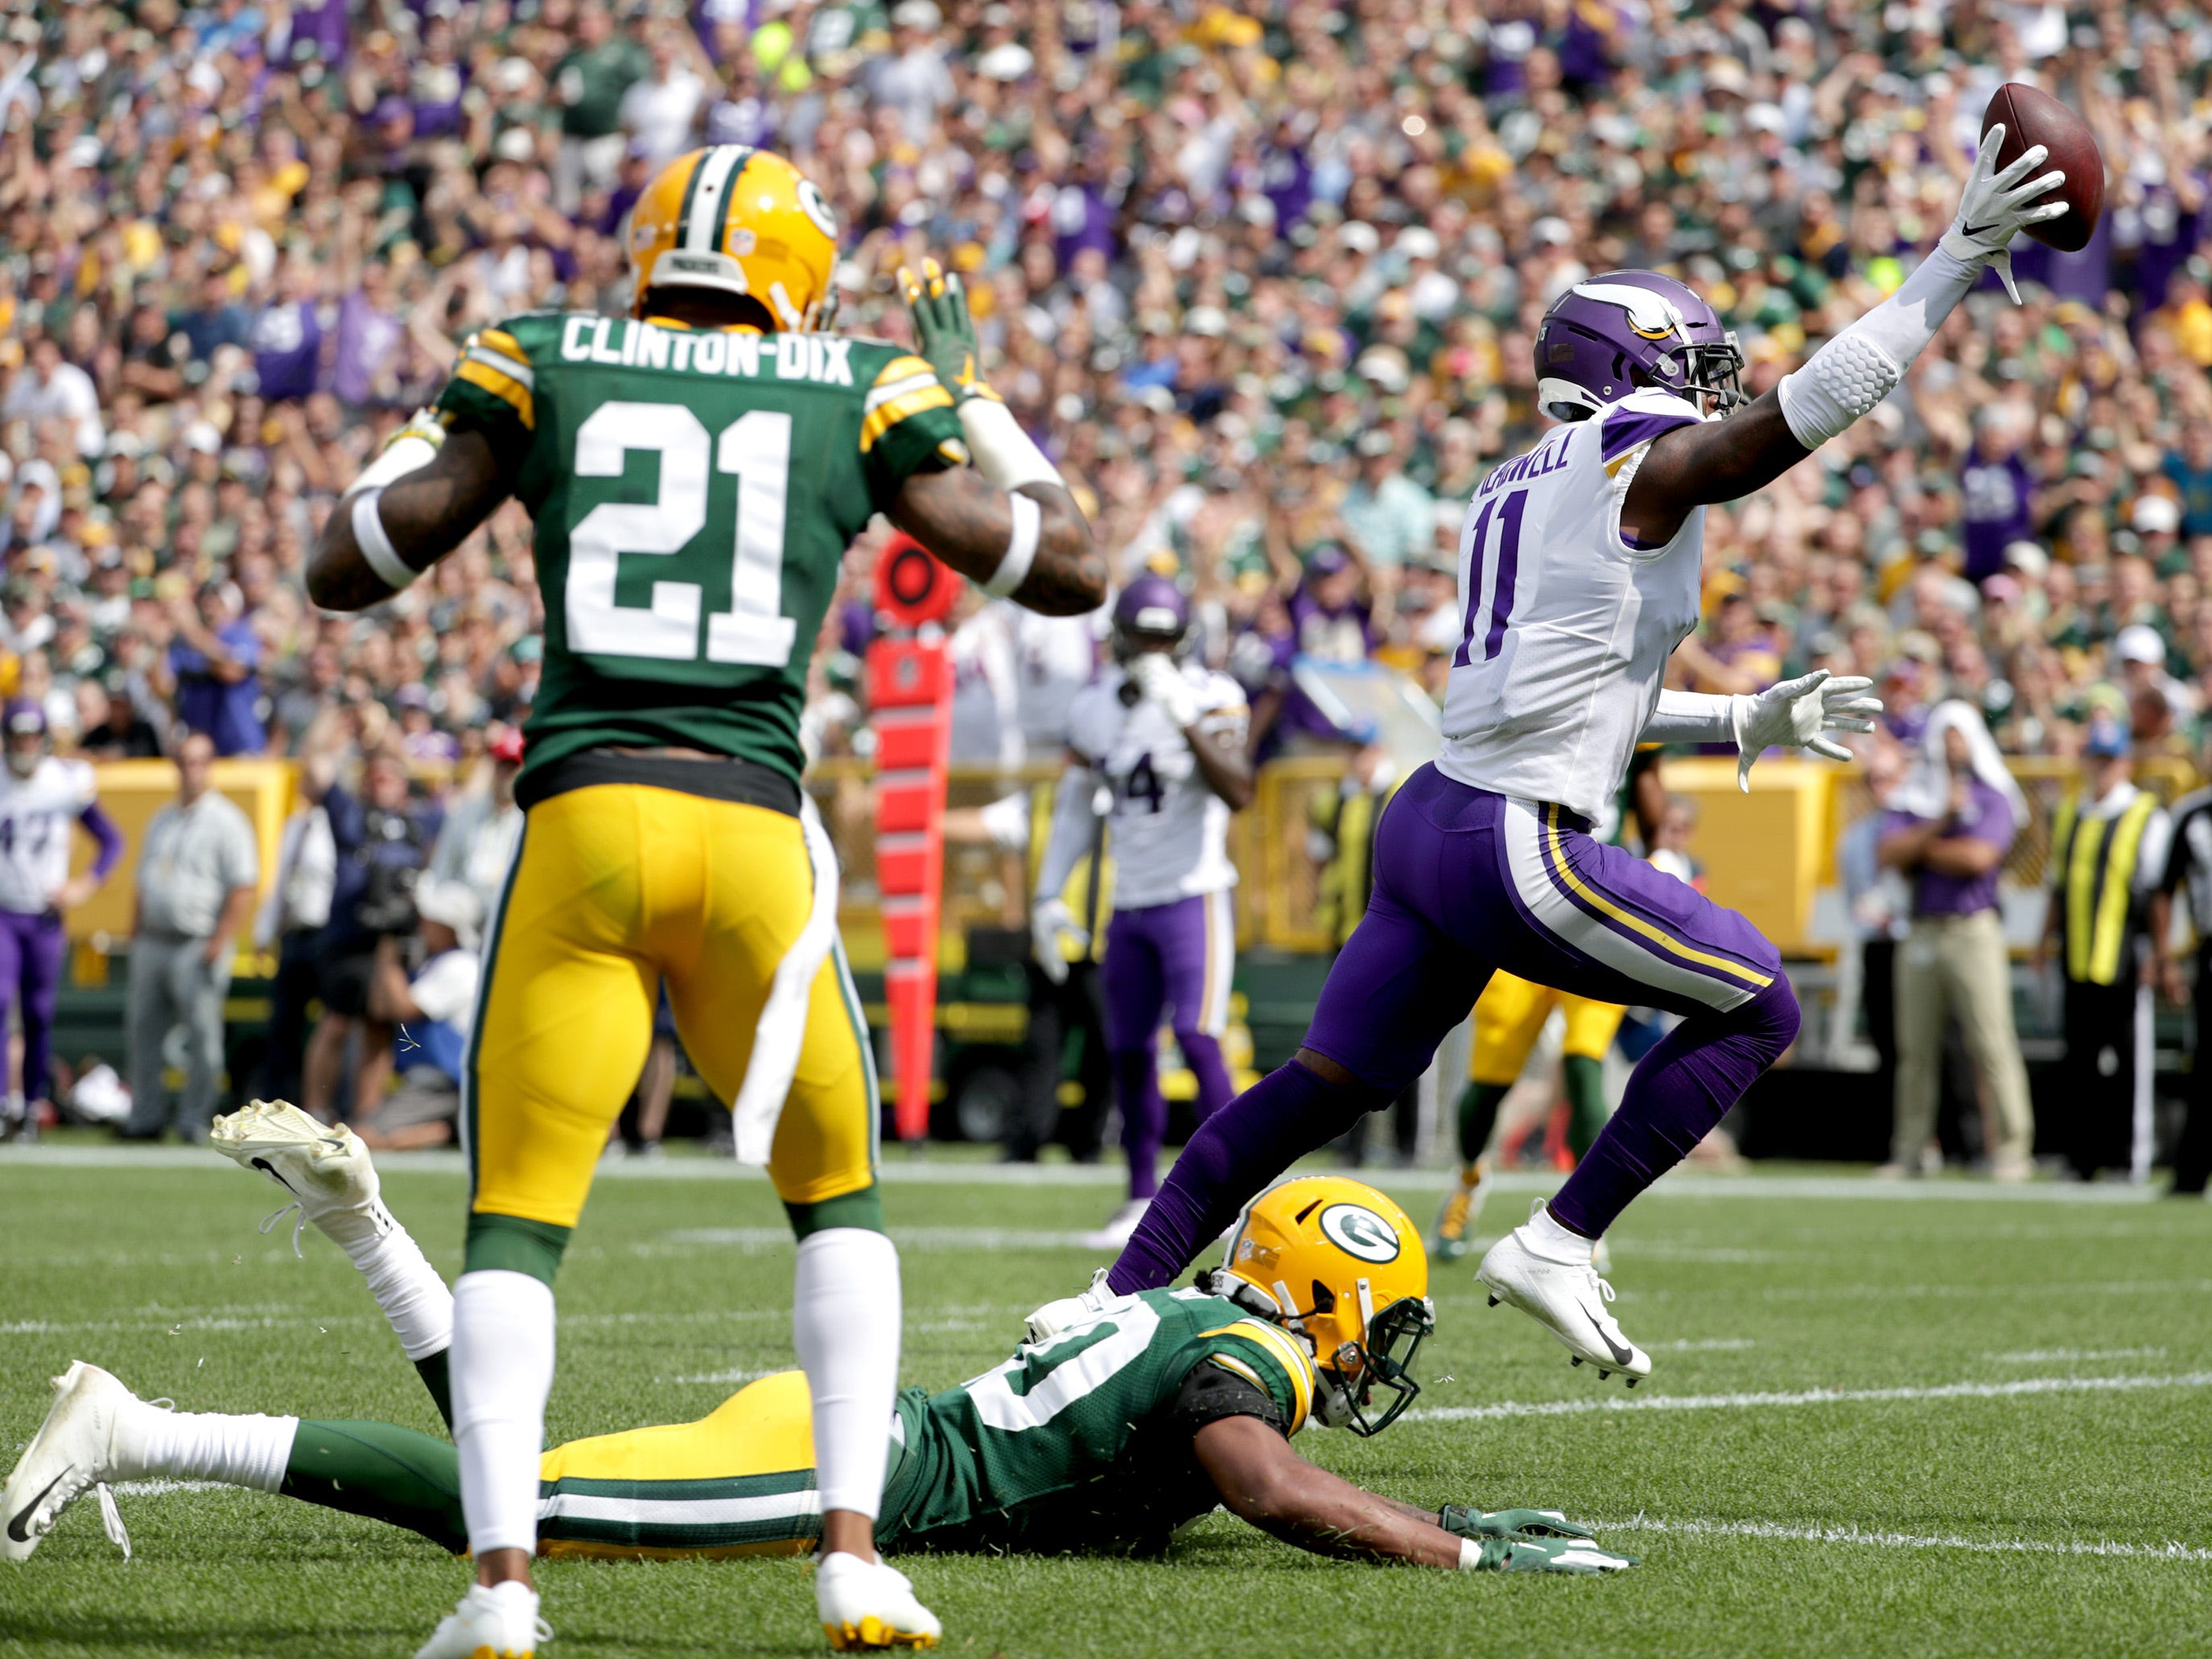 Minnesota Vikings' Laquon Treadwell cross the goal line in the first quarter against the Green Bay Packers during their football game on Sunday, September 16, 2018, at Lambeau Field in Green Bay, Wis.